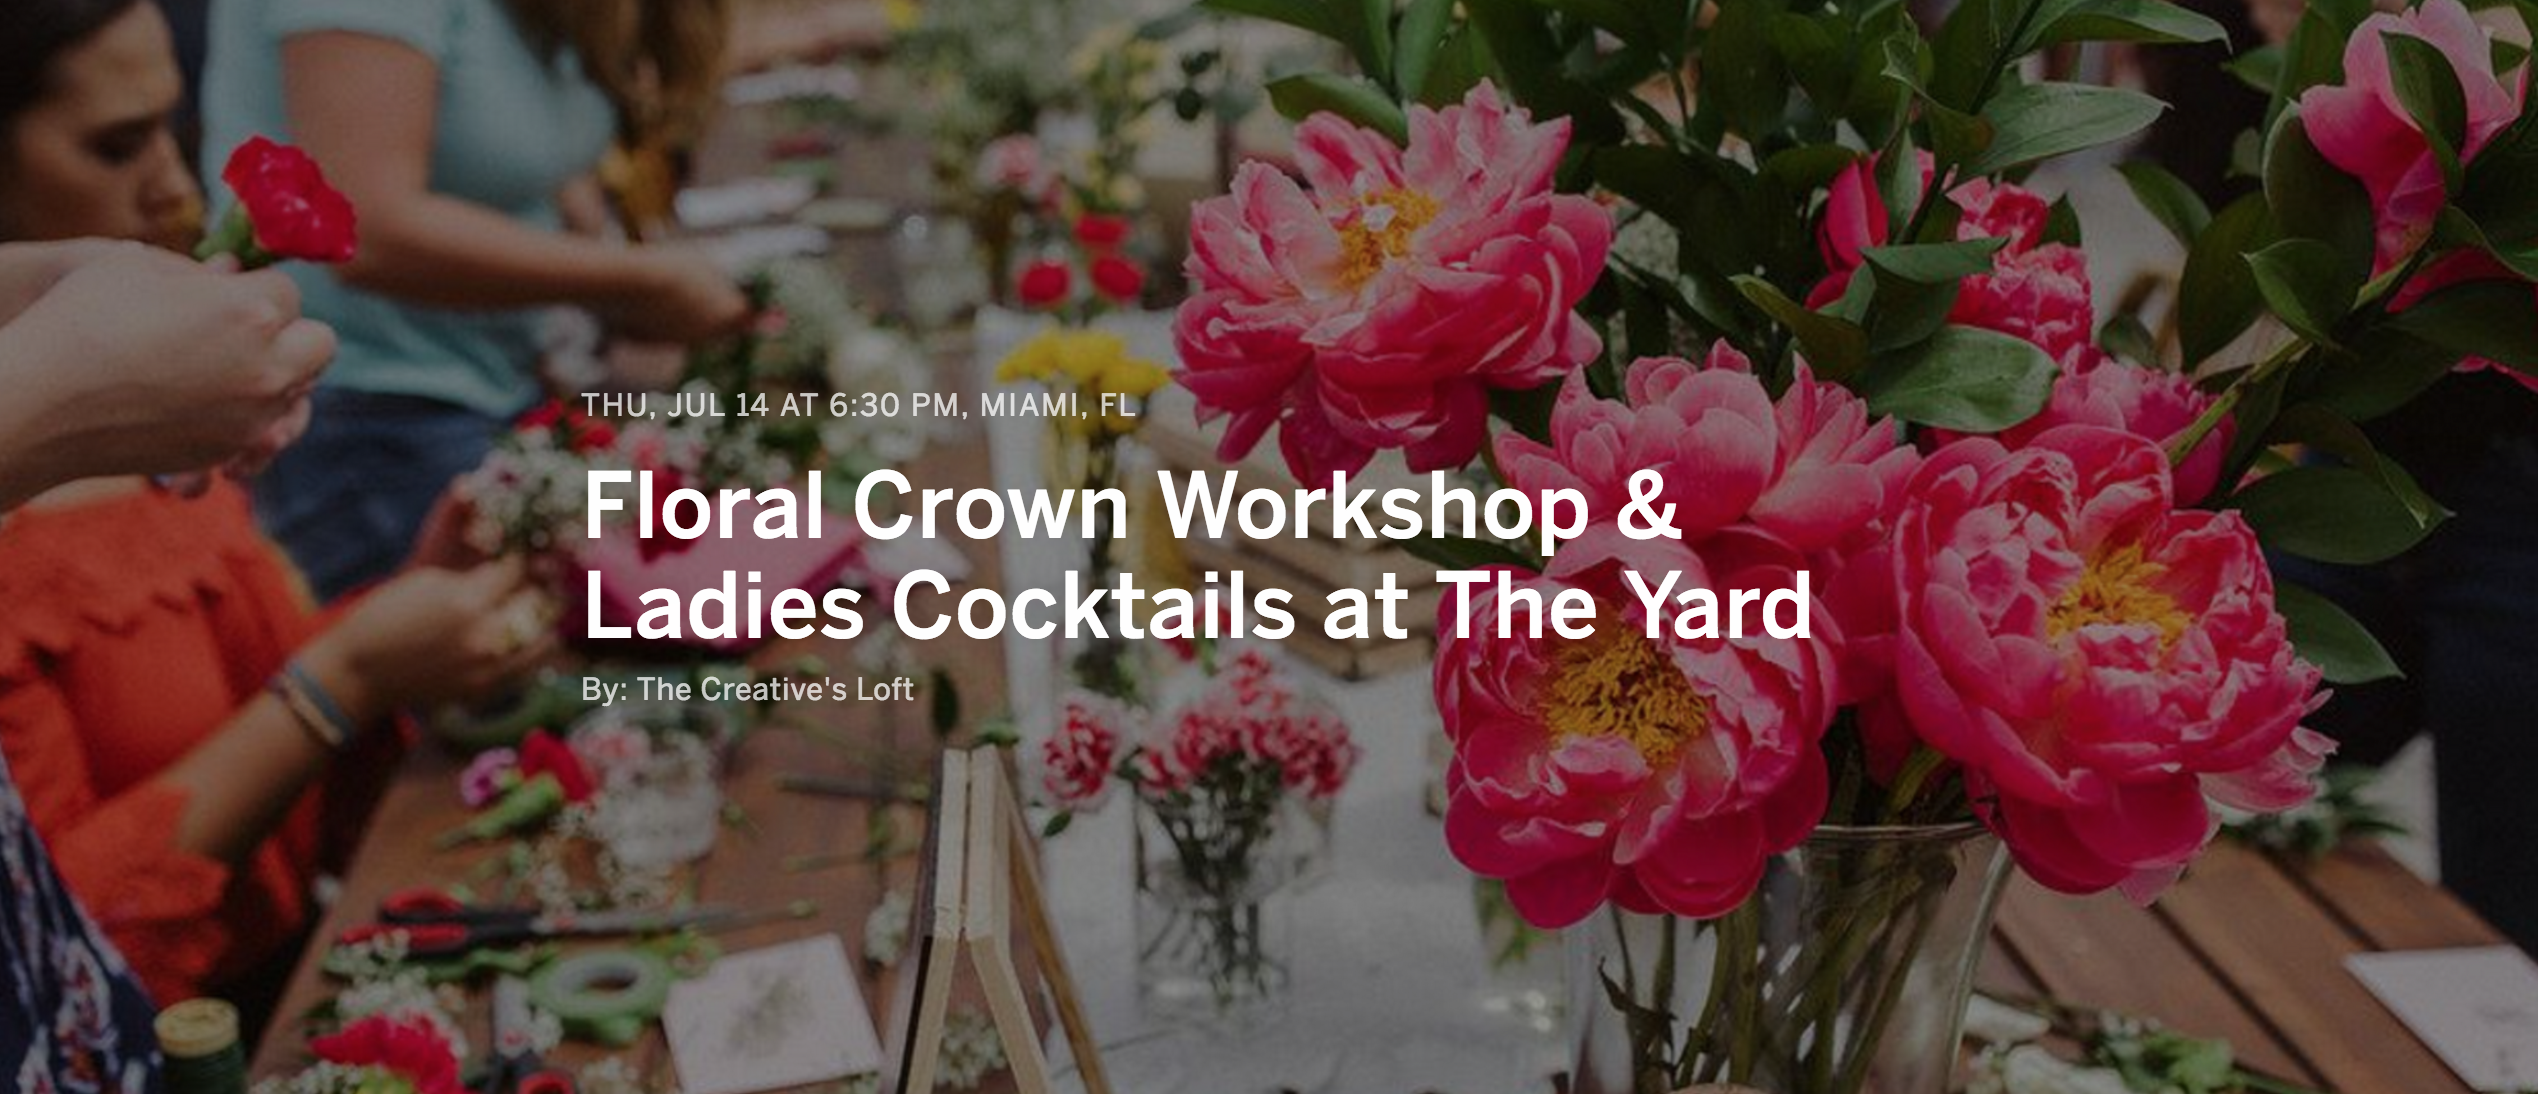 Floral Workshop & Ladies Cocktails at The Yard